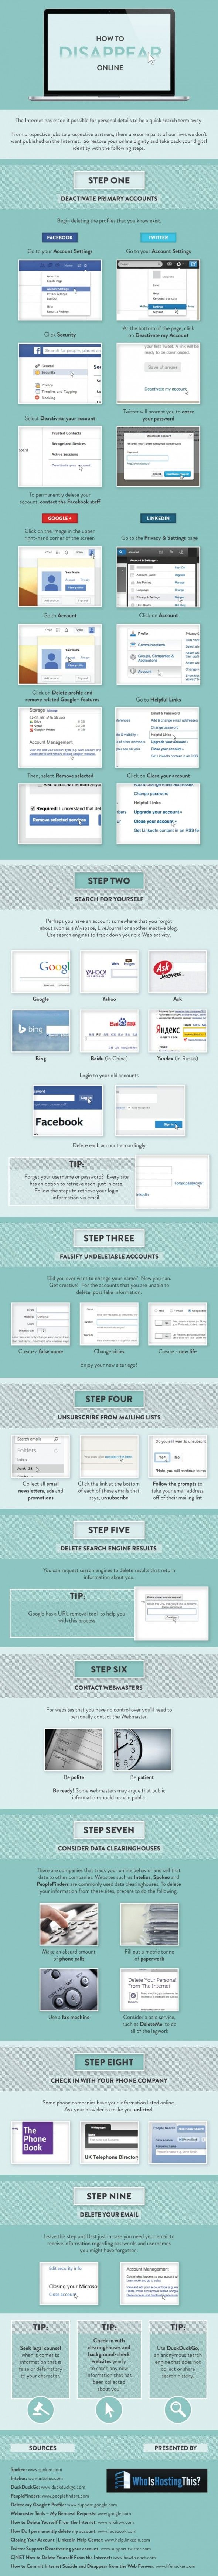 Infographic How To Delete Yourself From The Internet Online Infographic Digital Footprint Infographic